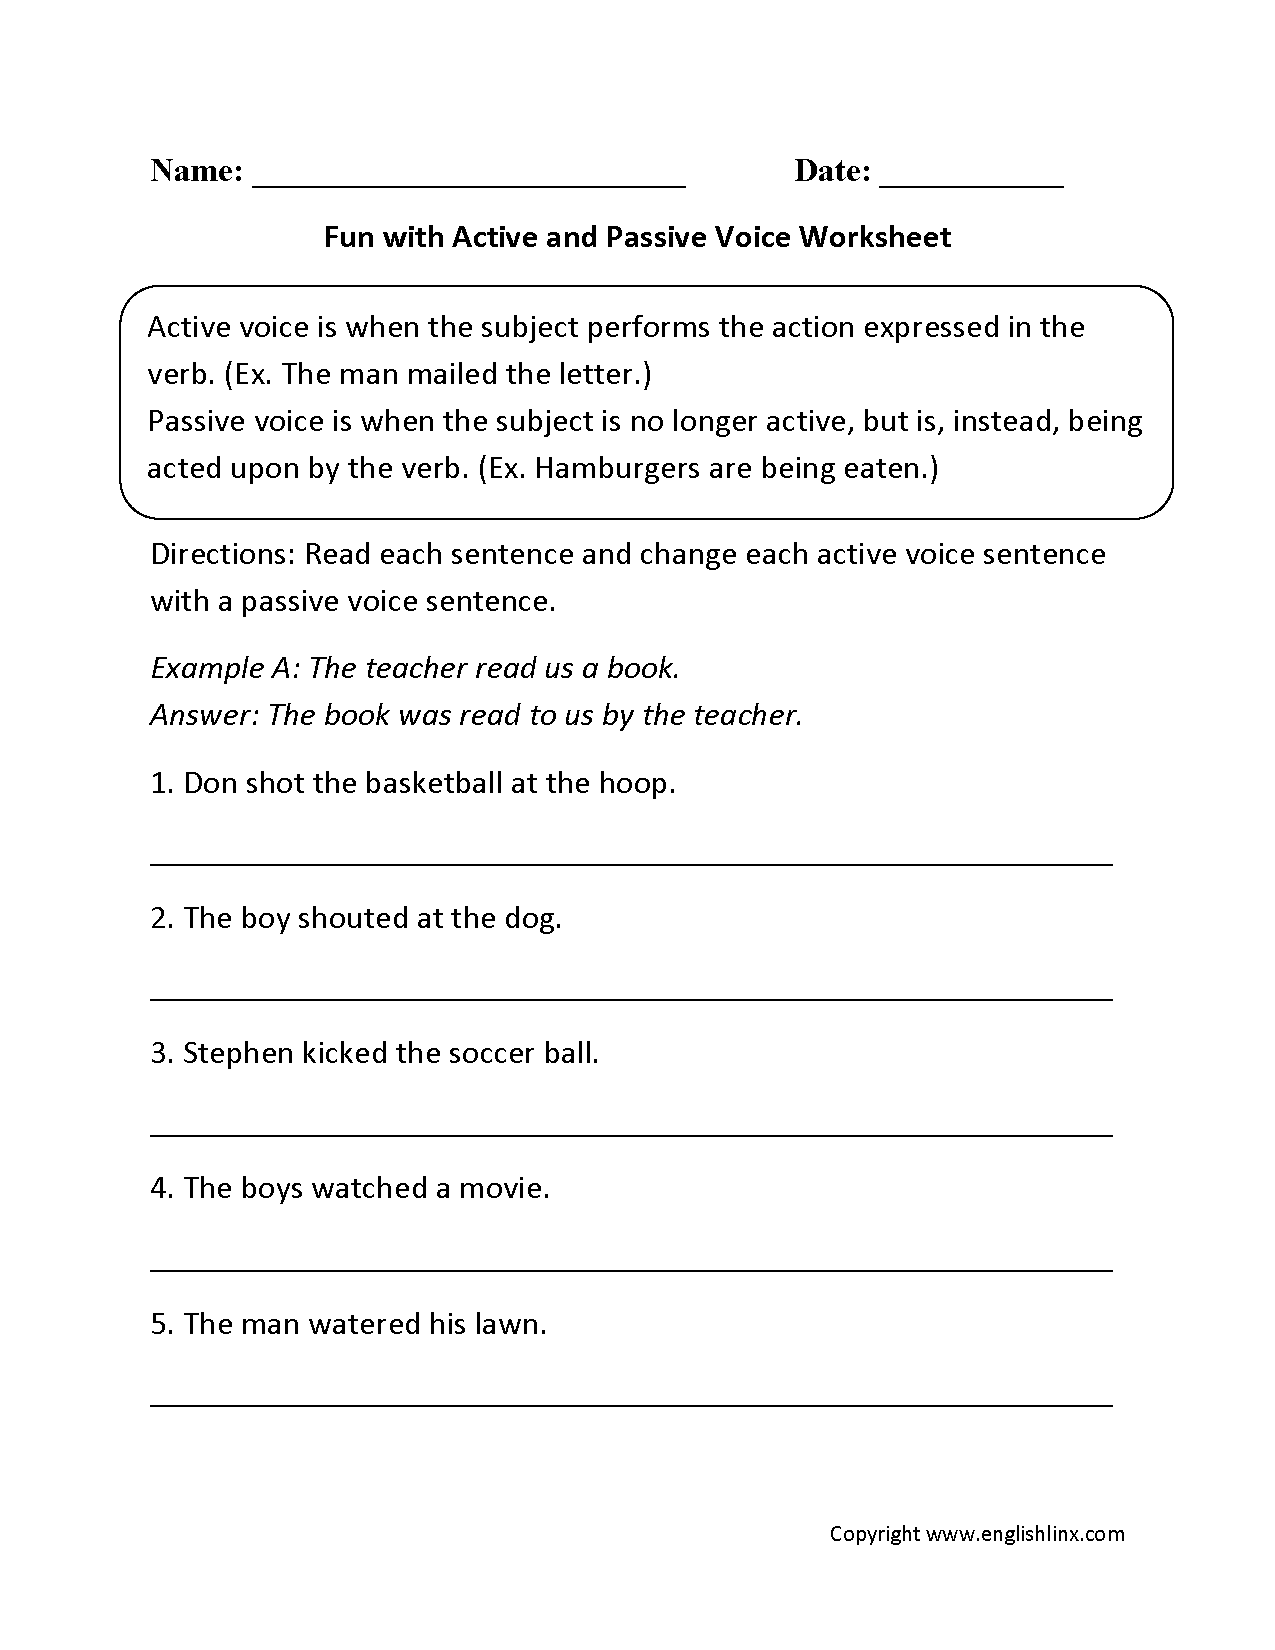 Englishlinx.com | Active and Passive Voice Worksheets